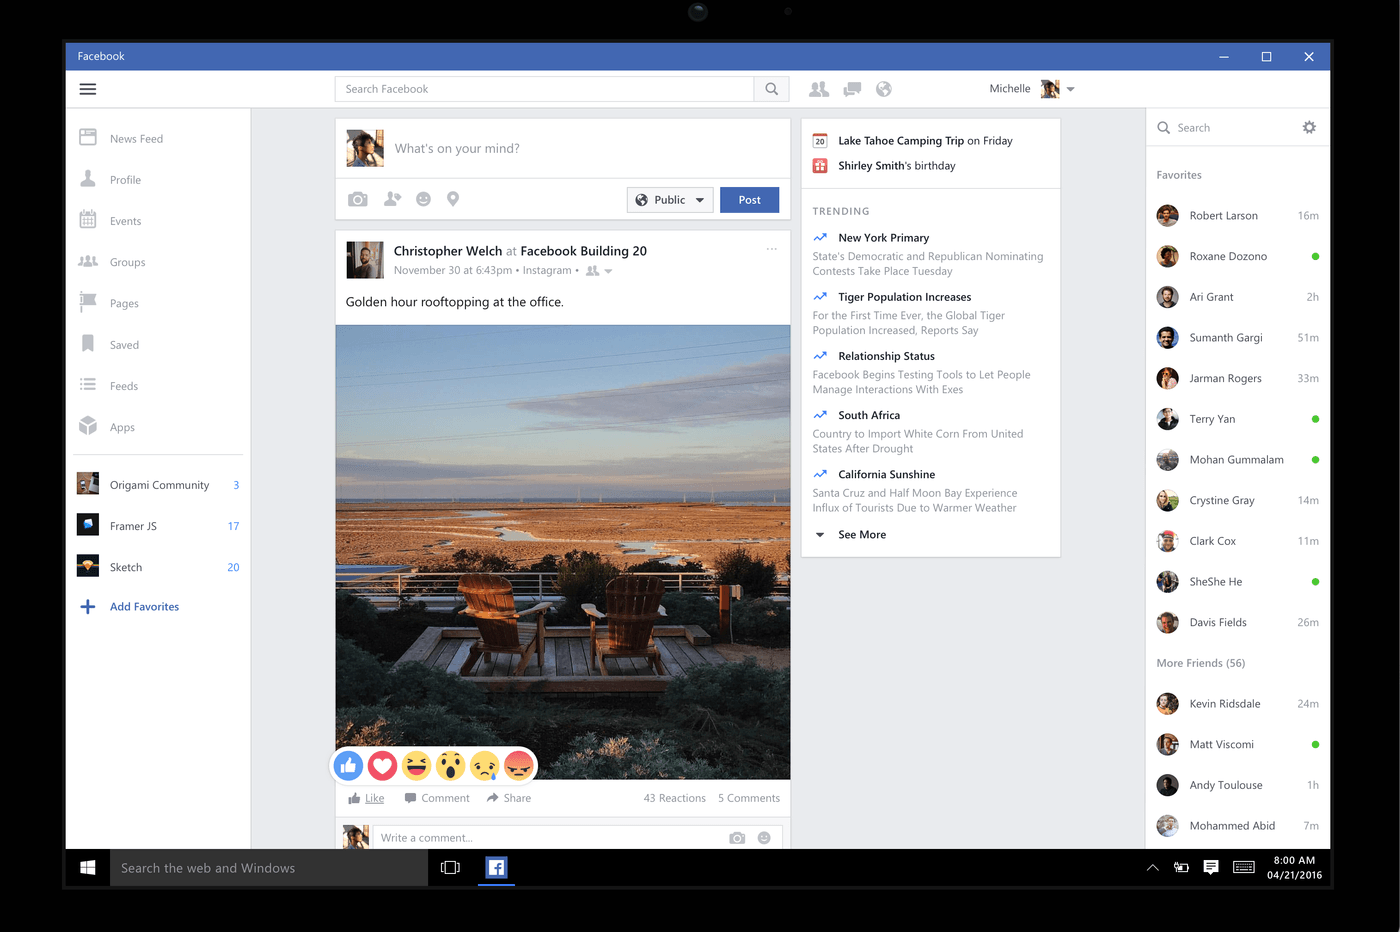 Facebook lets you make voice and video calls with Windows 10 app update